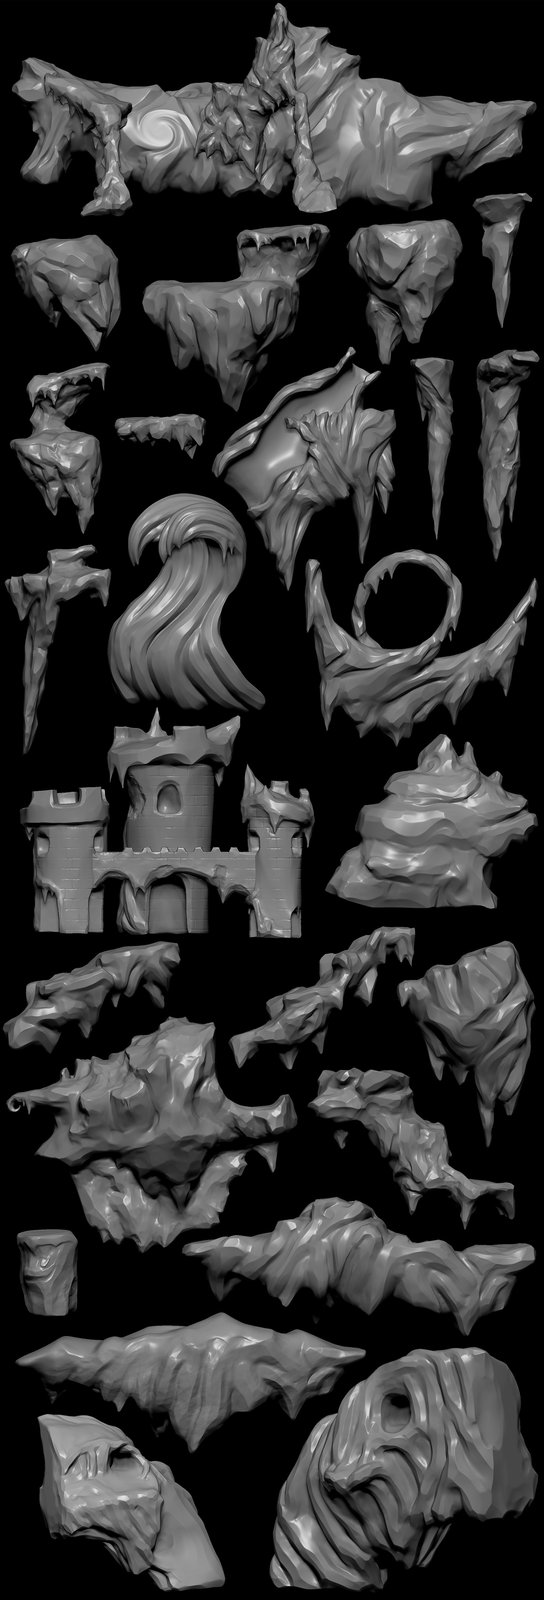 Some of many more Zbrush sculpts.